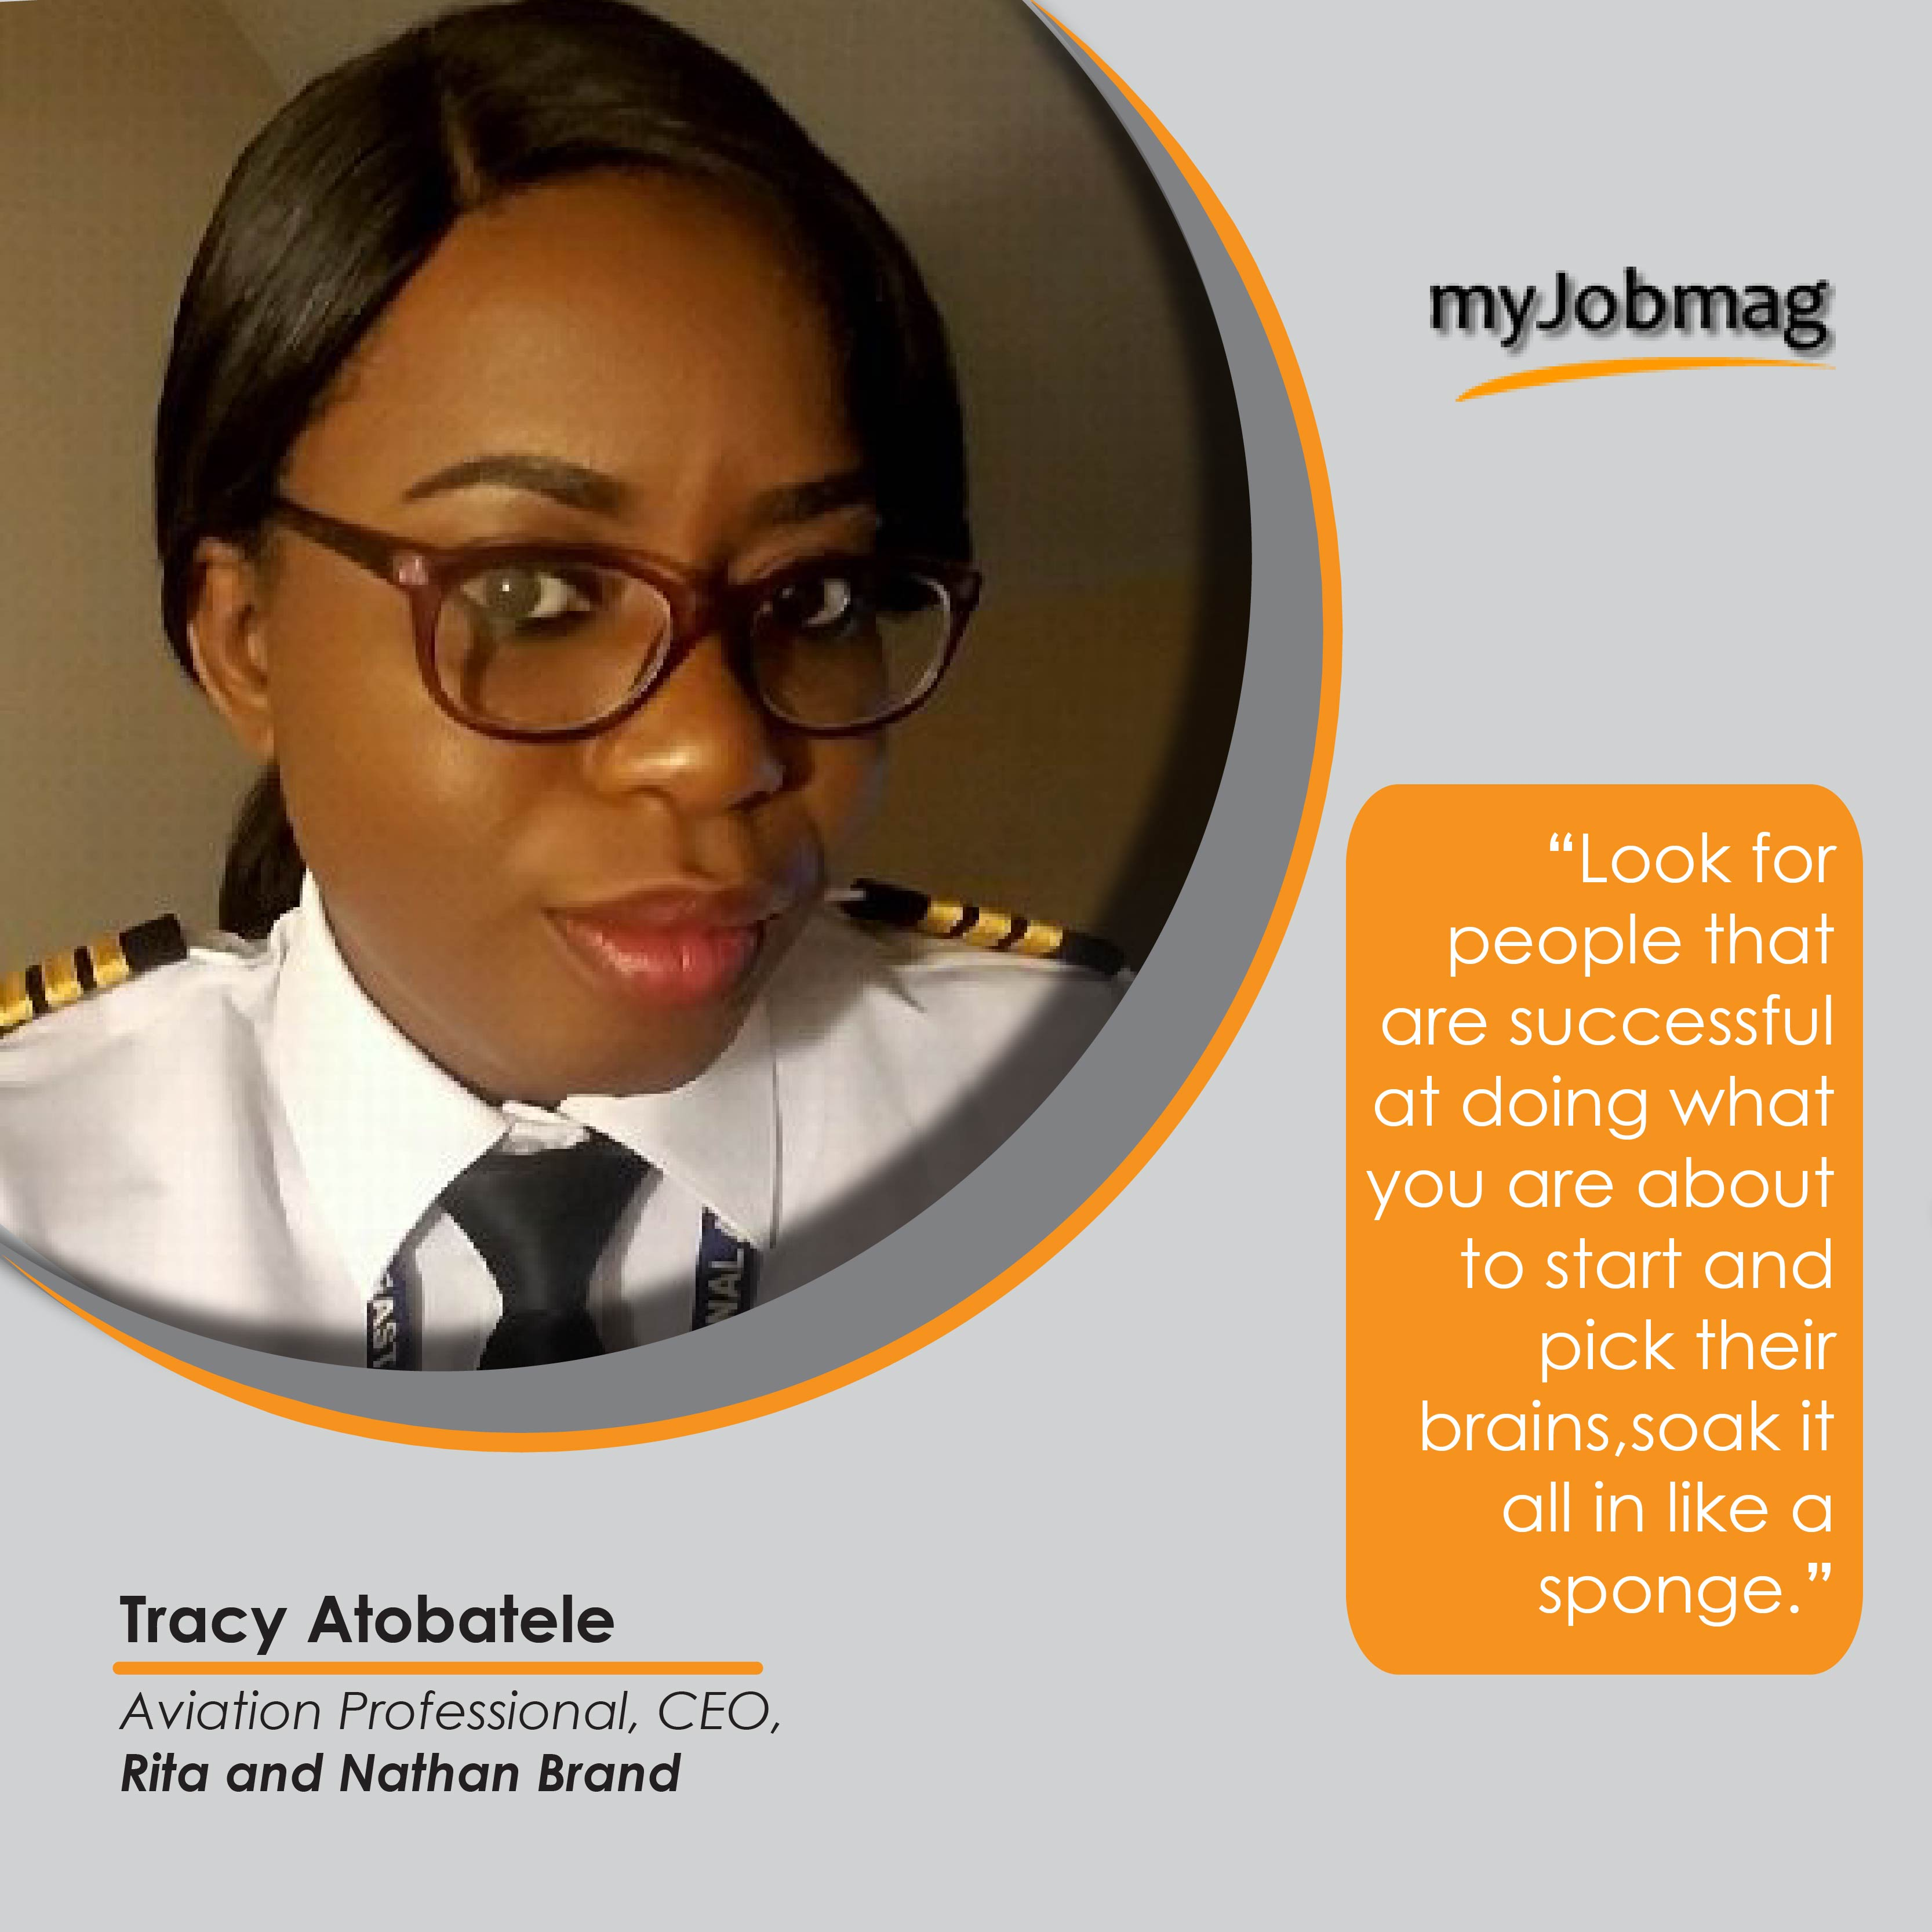 Tracy Atobatele career advice MyjobMag